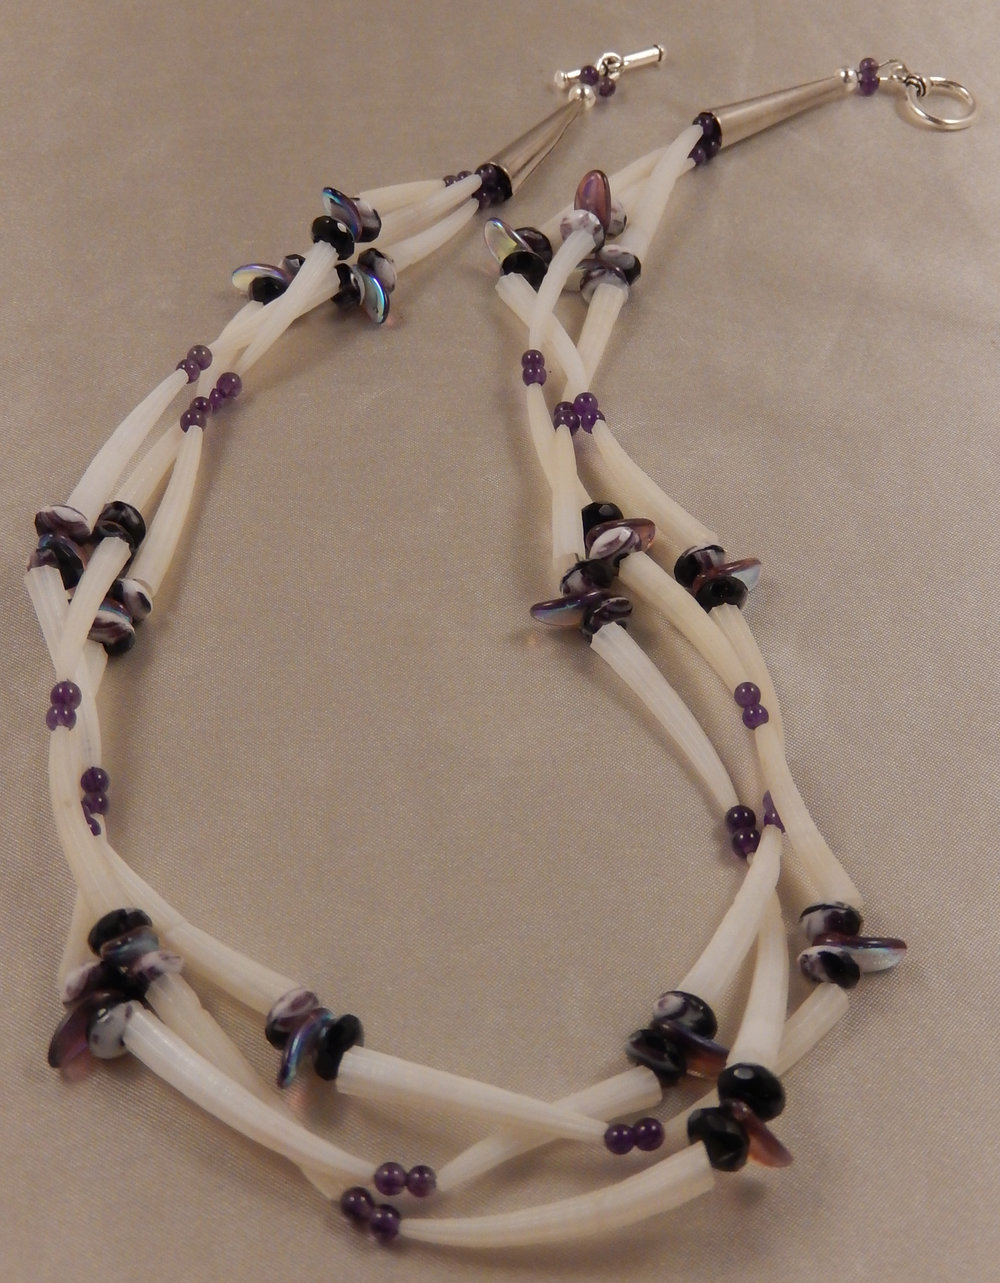 Dentalia shell necklace with amethyst gemstone rounds and czech glass rondelles in dark purple with white swirls.